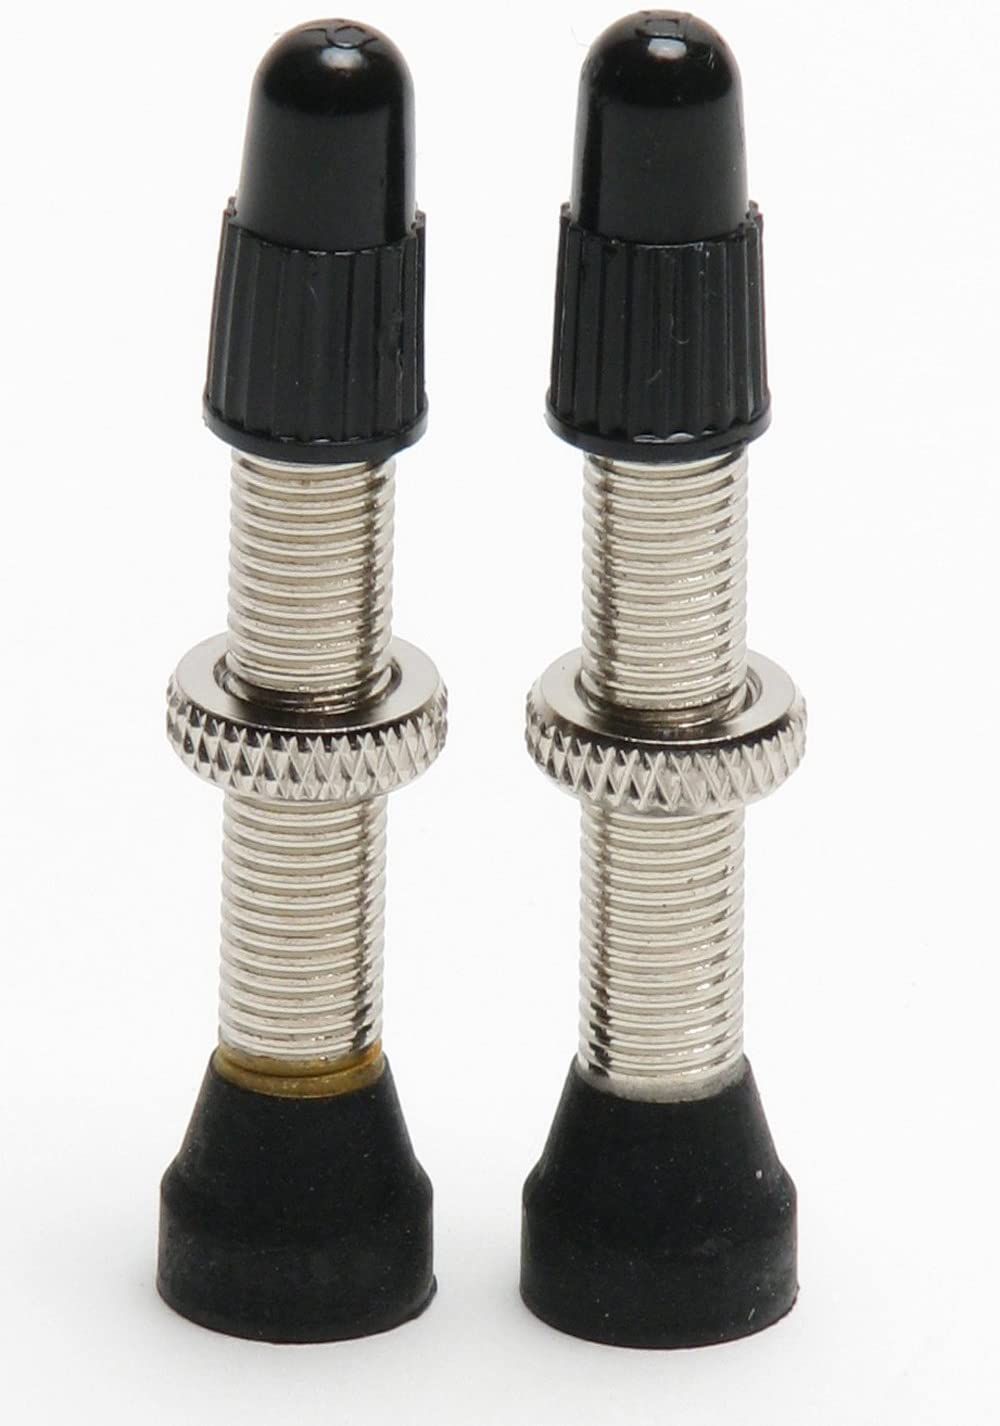 Stans-No Tubes 35mm Presta Universal Valve Stem (Carded Pair for Mountain): Sports & Outdoors